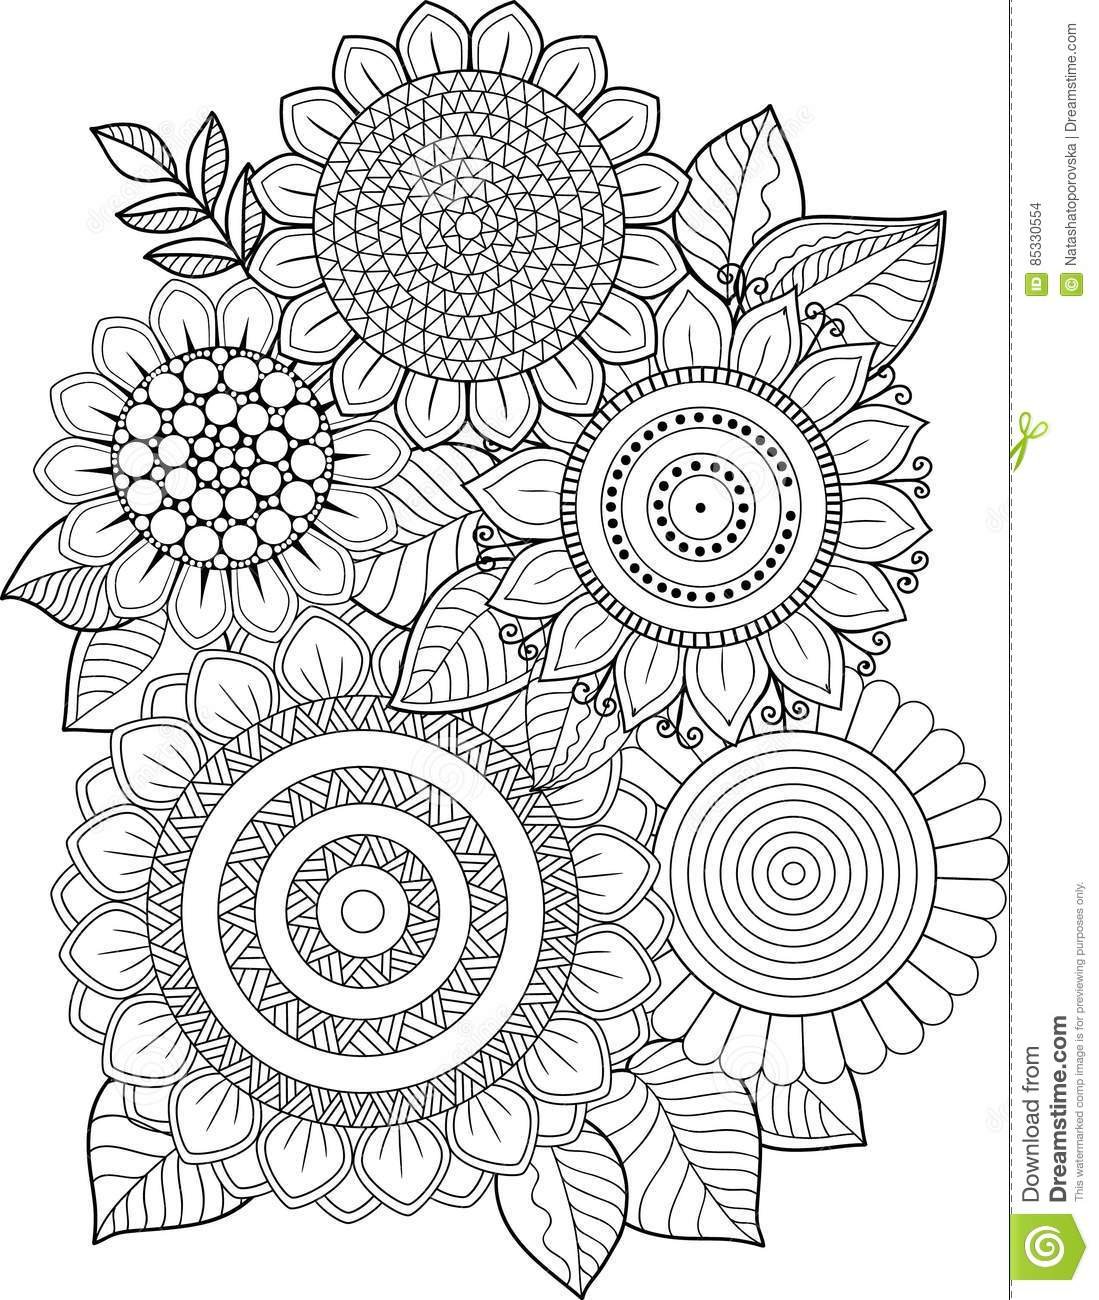 Black and white Sunflowers Isolated On White Abstract Doodle Background Made Of Flowers And